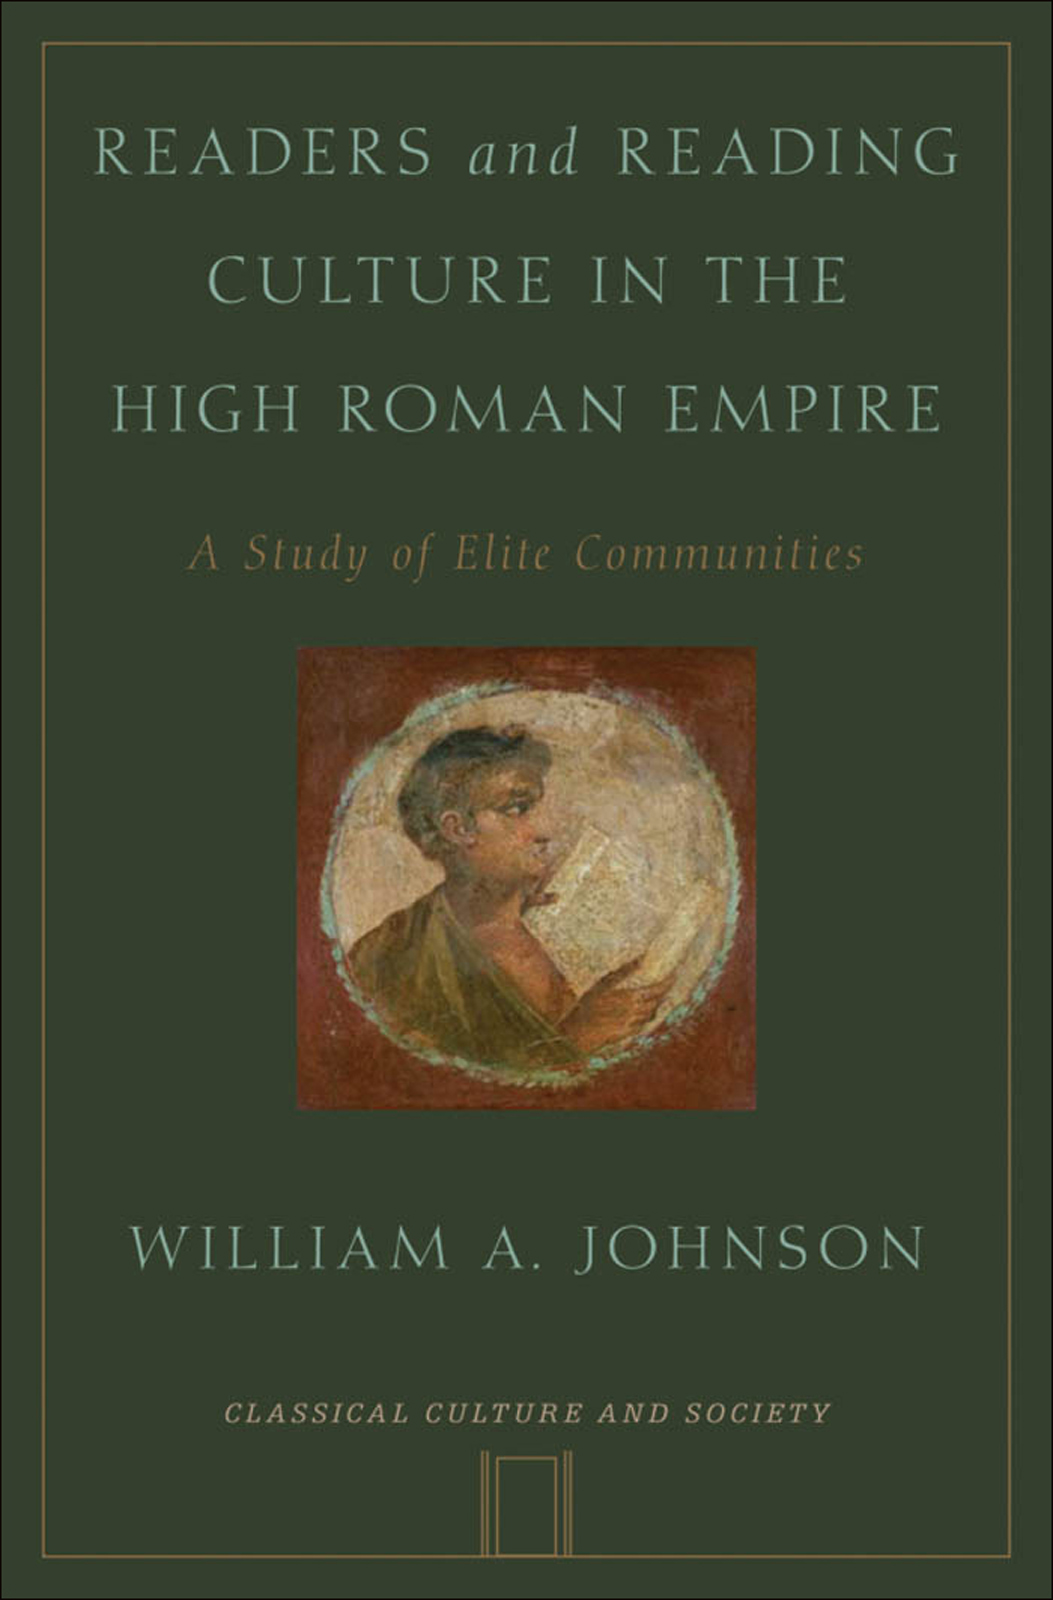 Readers and Reading Culture in the High Roman Empire:A Study of Elite Communities